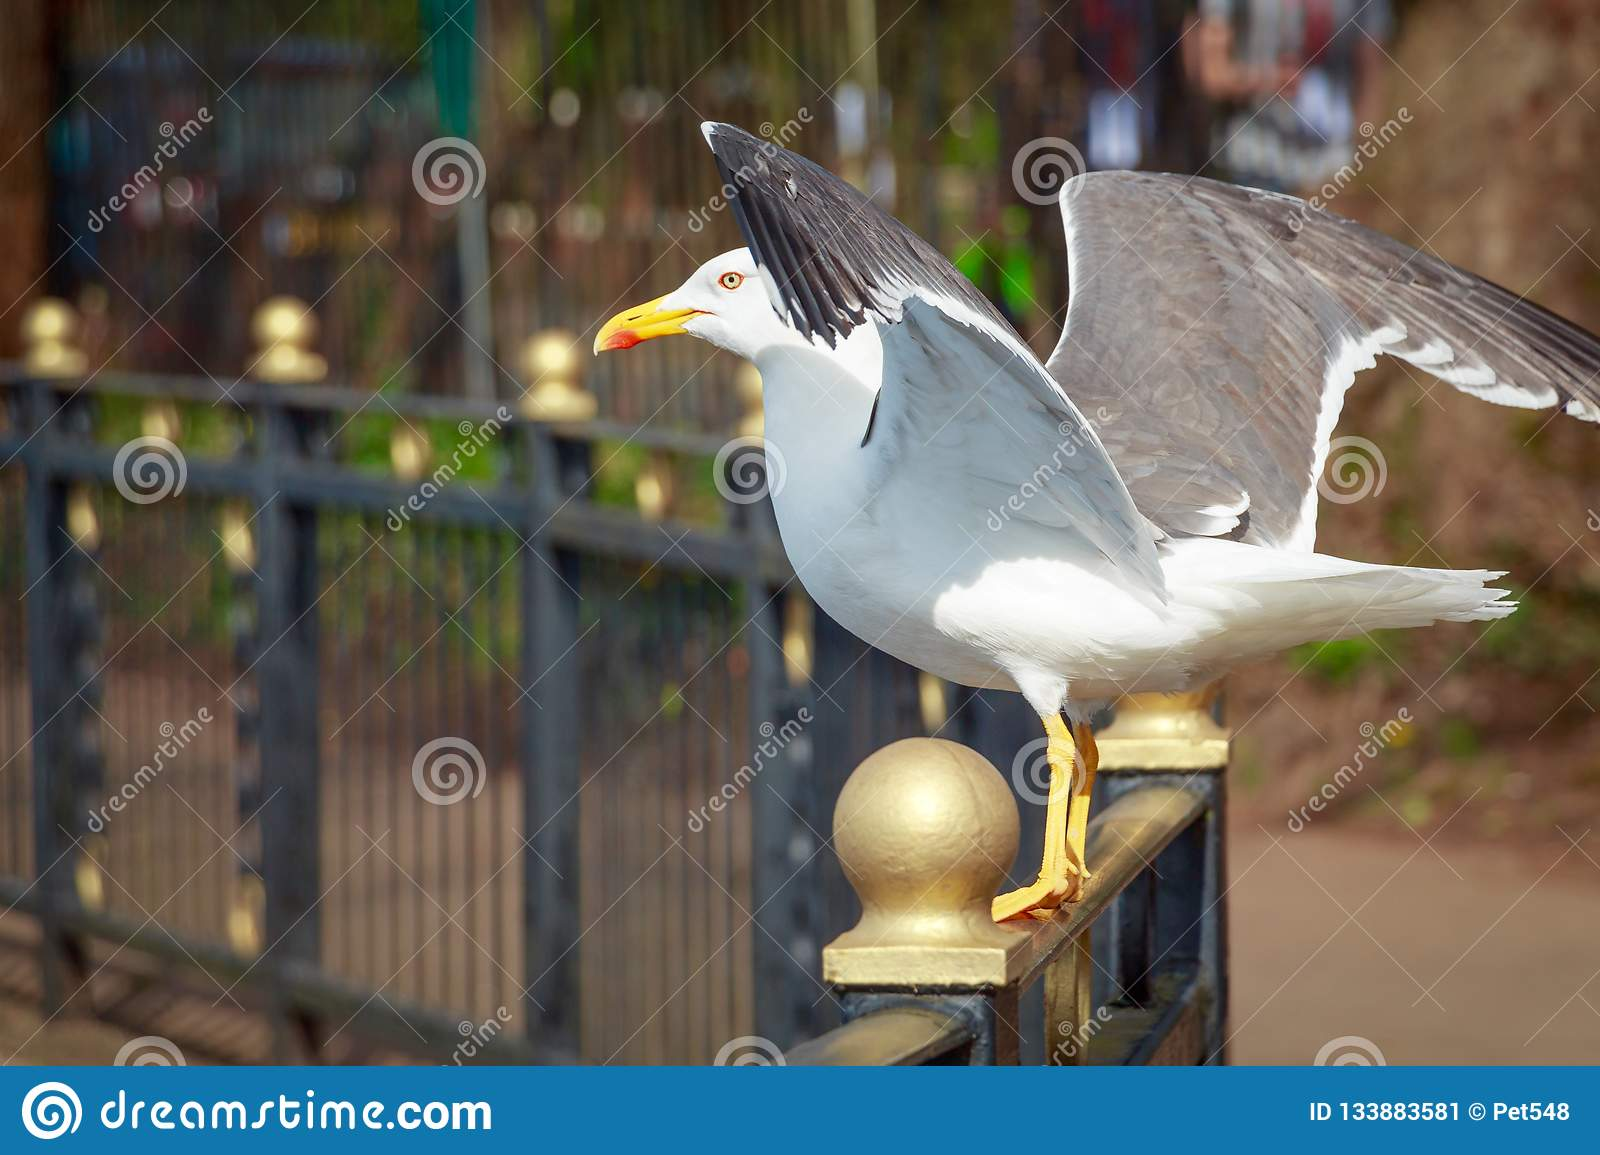 Lesser black-backed gull with open wings